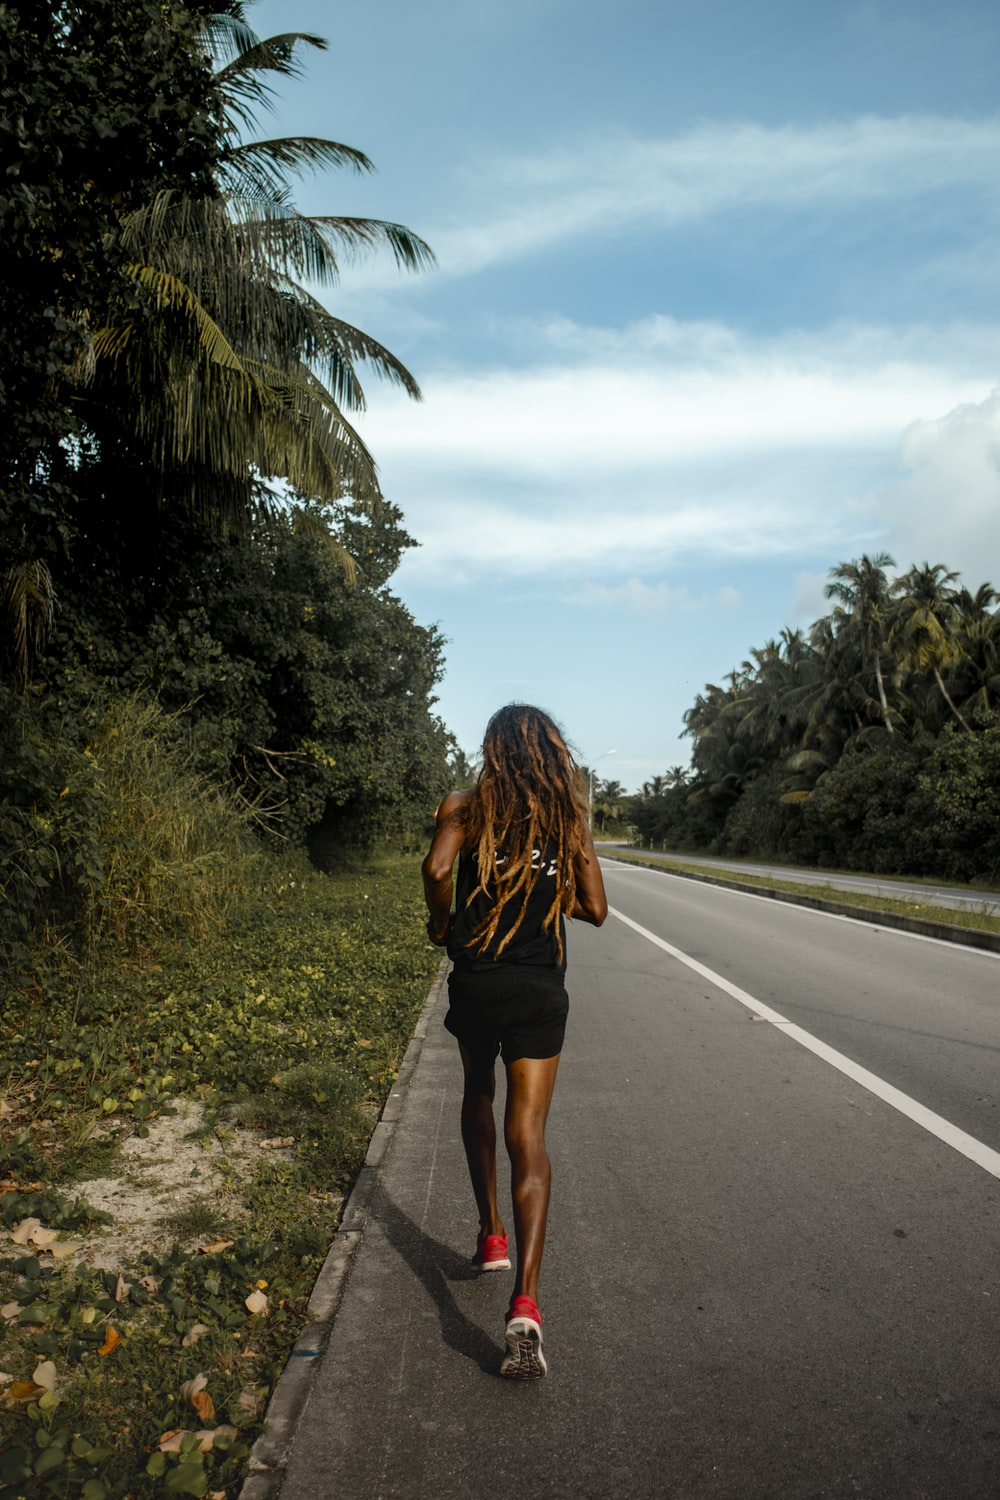 woman in black dress walking on the road during daytime